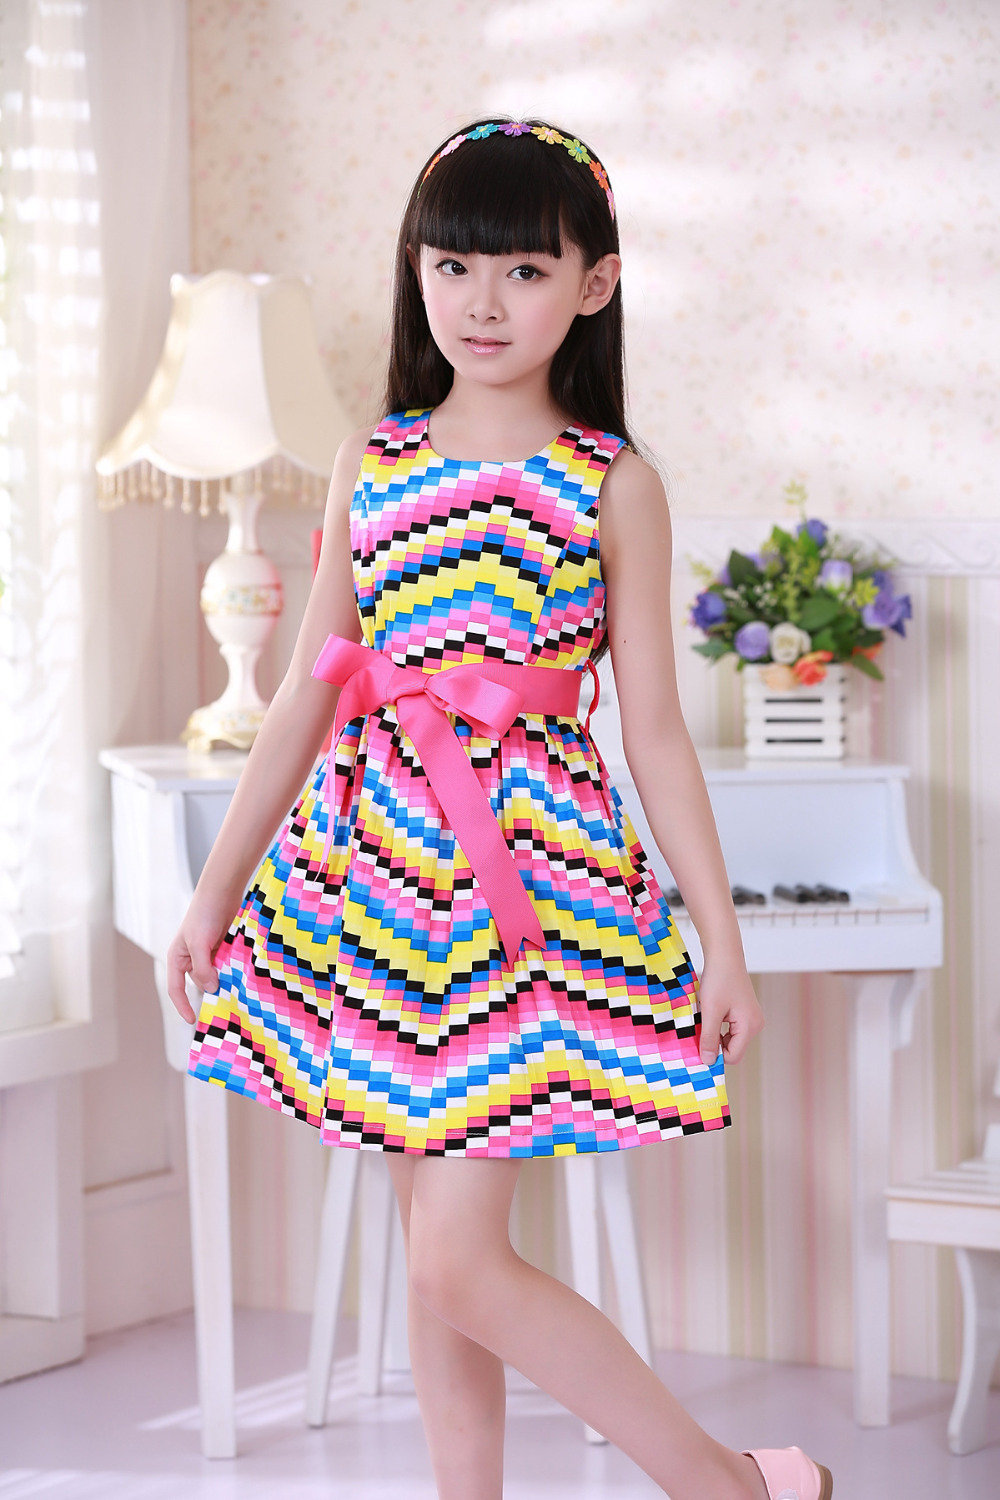 In our «Kids fashion trends for boys and girls clothes» article we will talk about fashion trends for kids. Kids fashion trendy colors Transparent multilayered skirts and warm blouses are in .